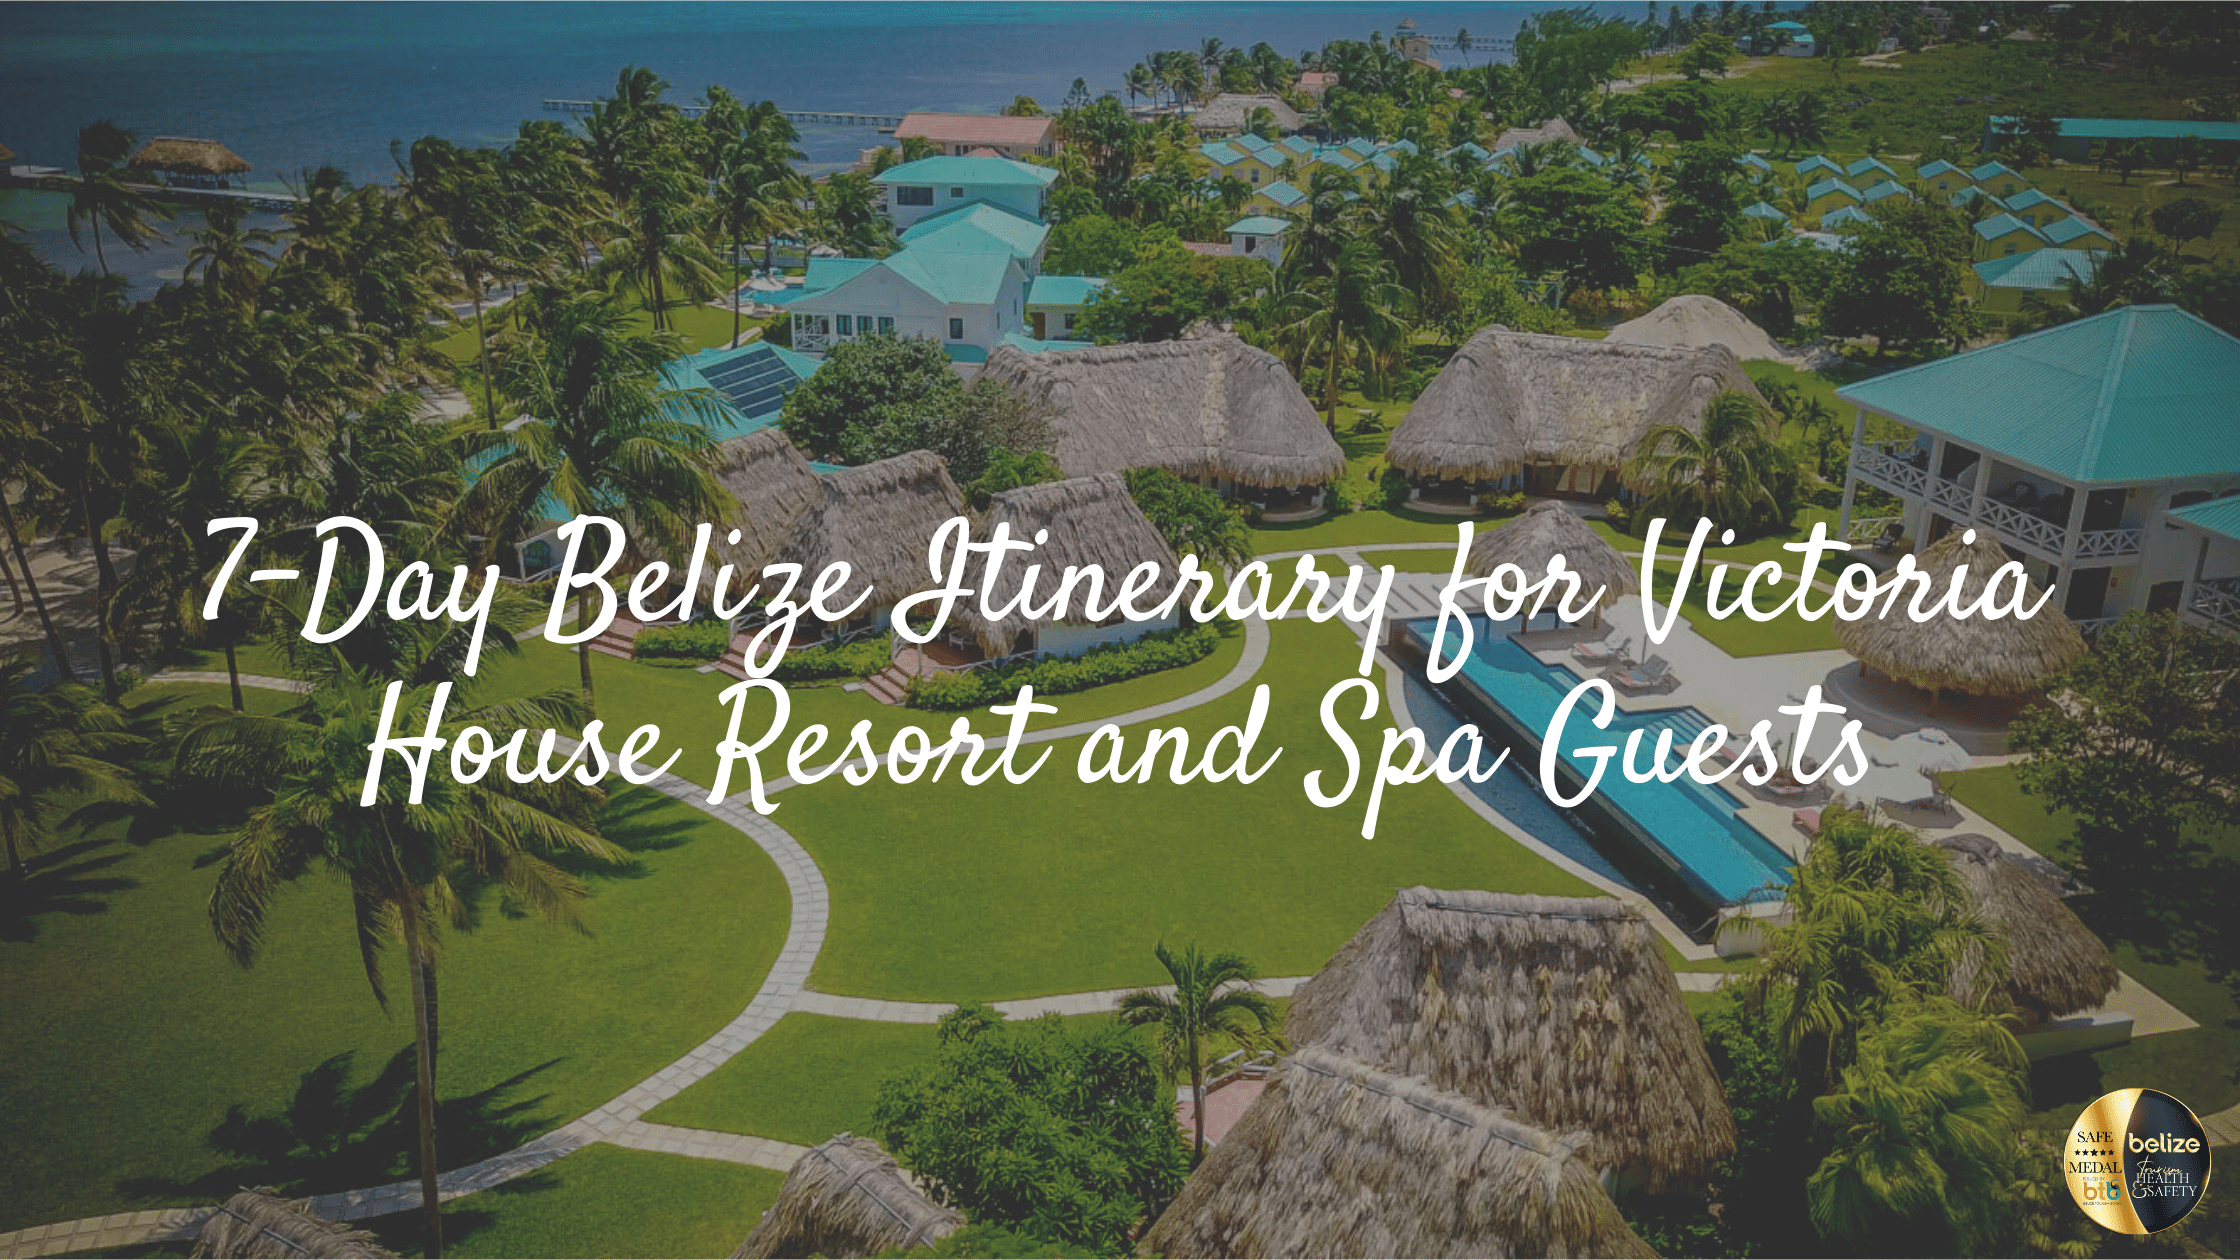 Aerial shot of Victoria House with words 7-day Belize itinerary for Victoria House Resort and Spa Guests